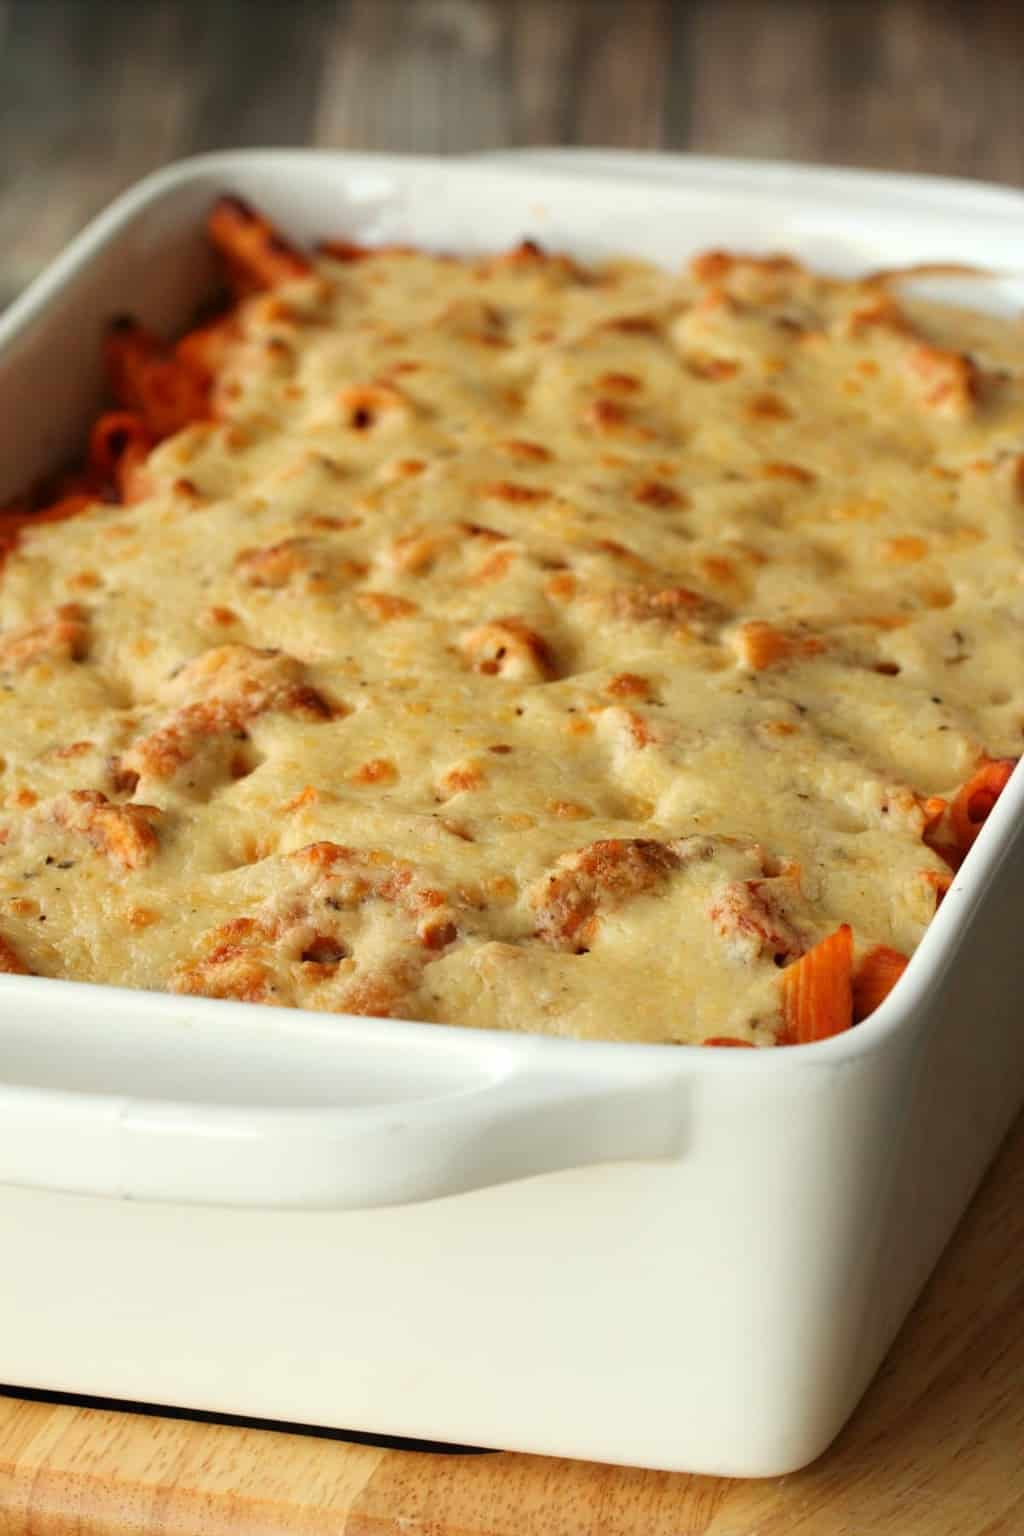 Vegan Pasta Bake straight out of the oven in a rectangular white oven dish.